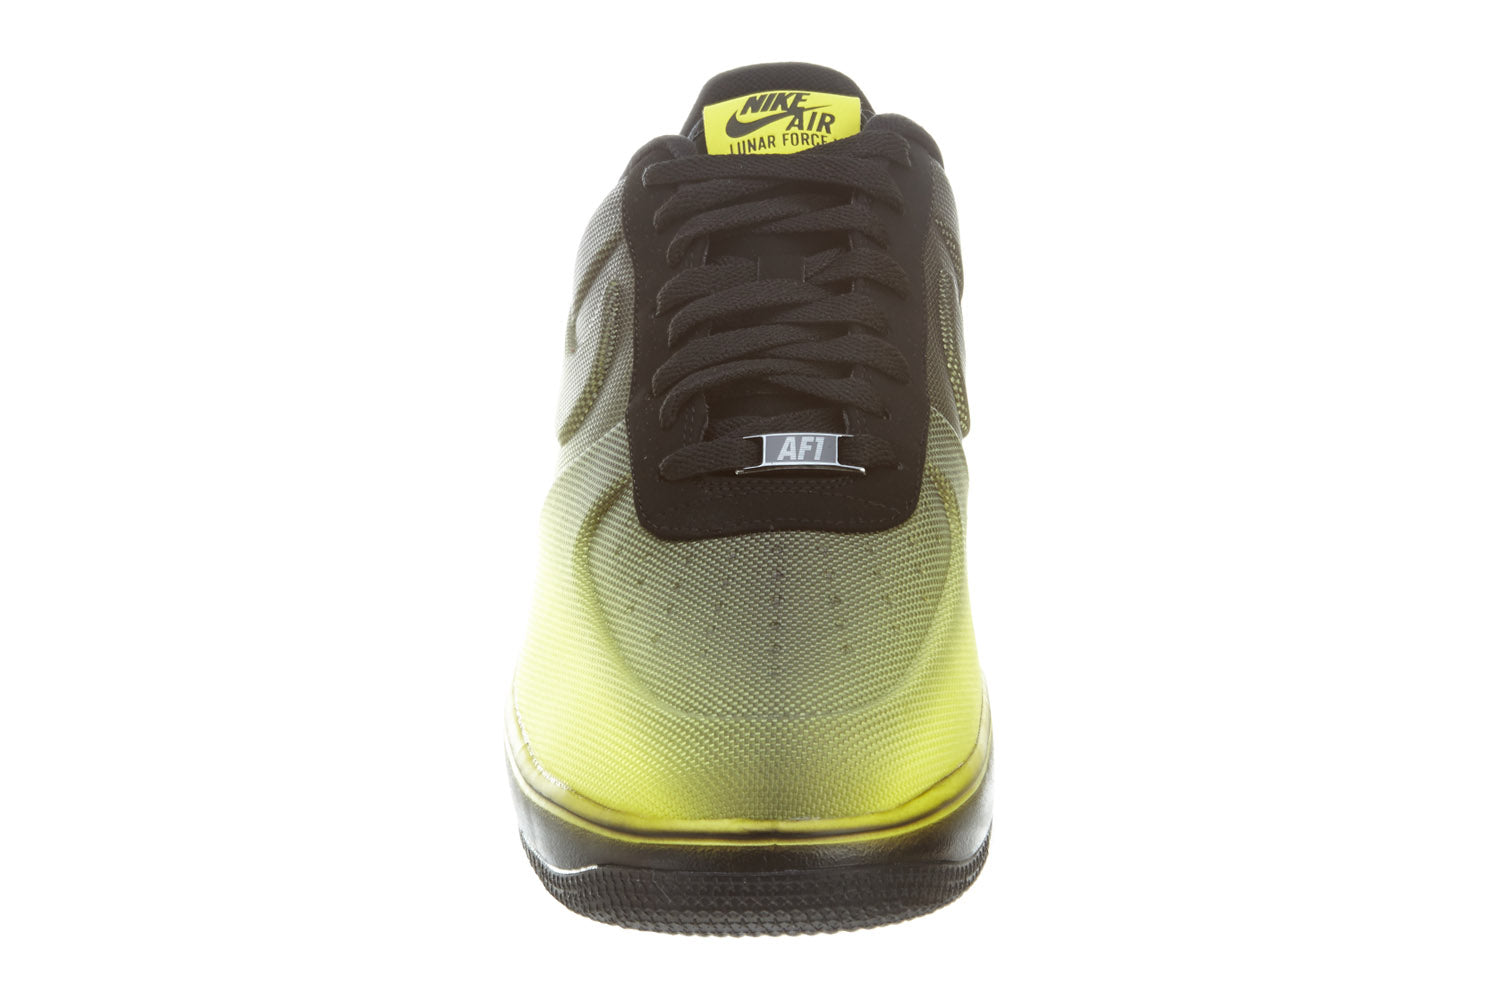 online store 08982 eb9cb Nike Lunar Force 1 Vt Mesh Mens Style 599499